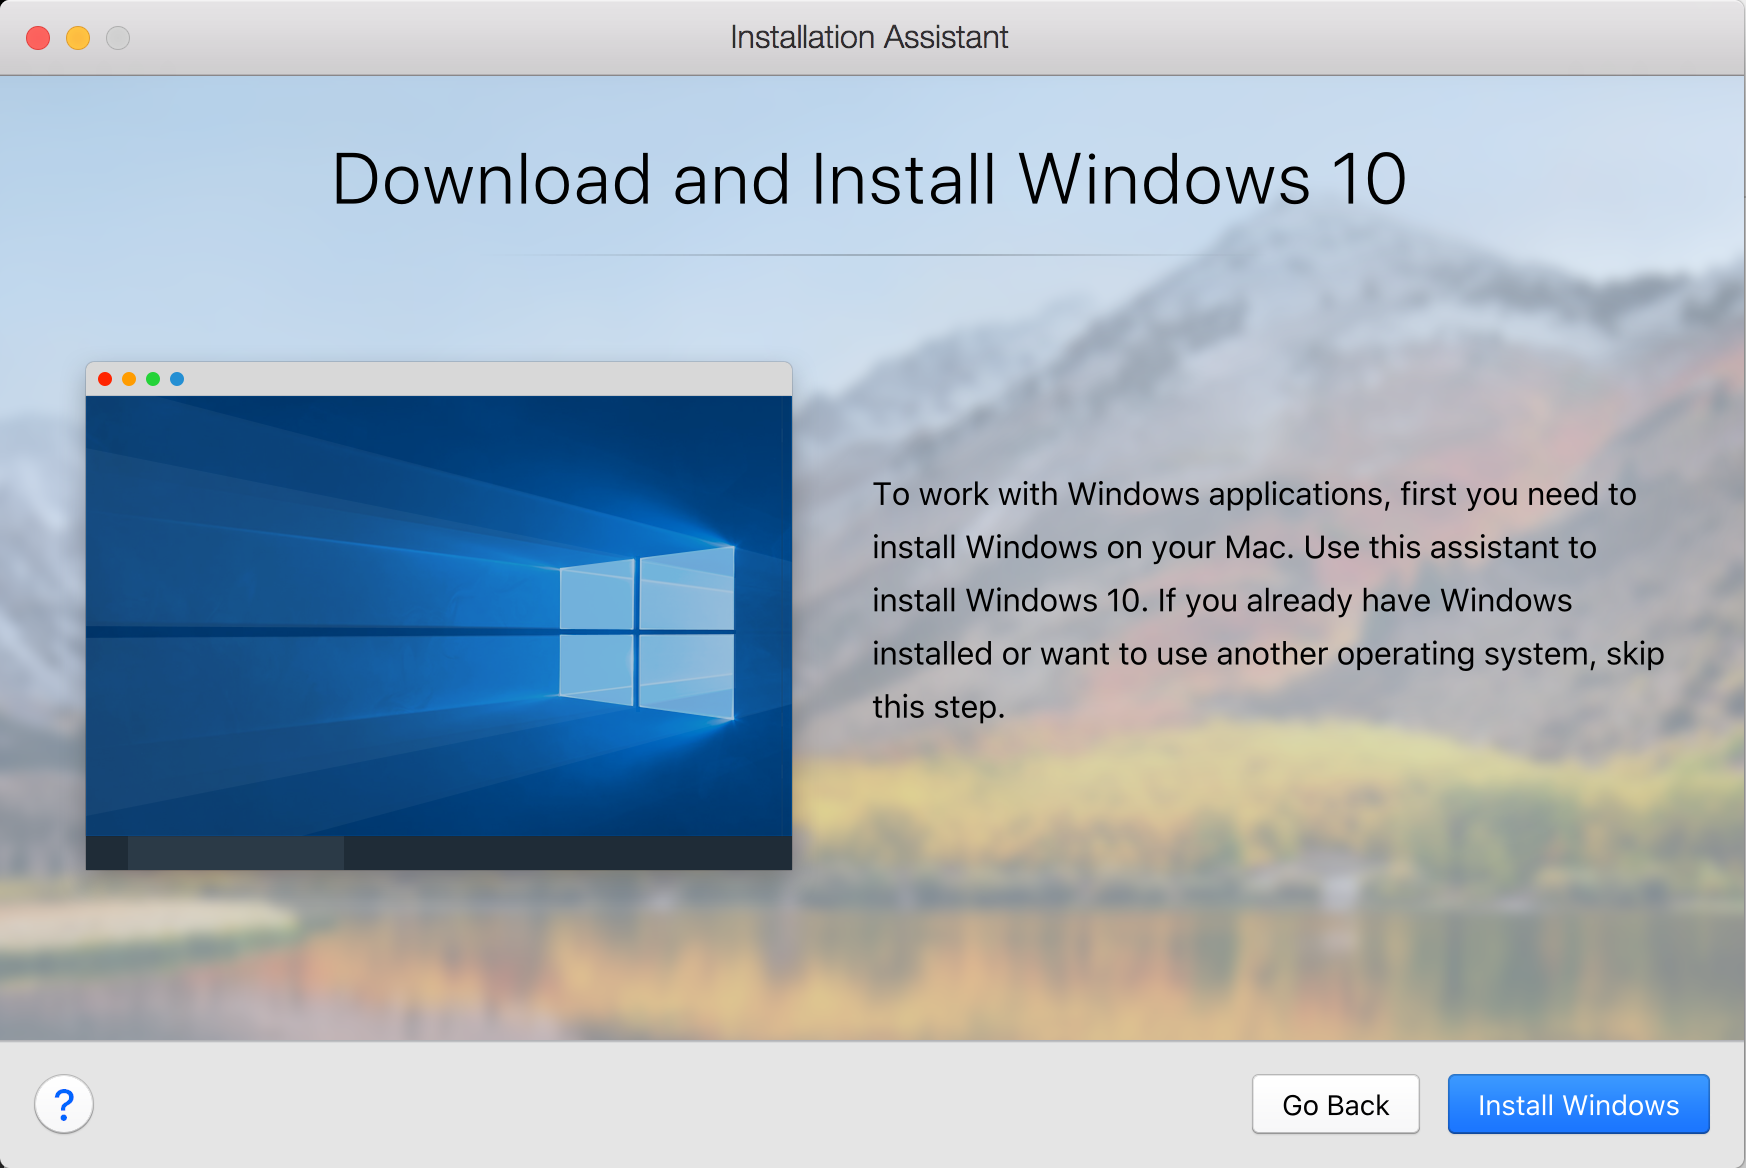 Install Windows on your Mac using Parallels Desktop